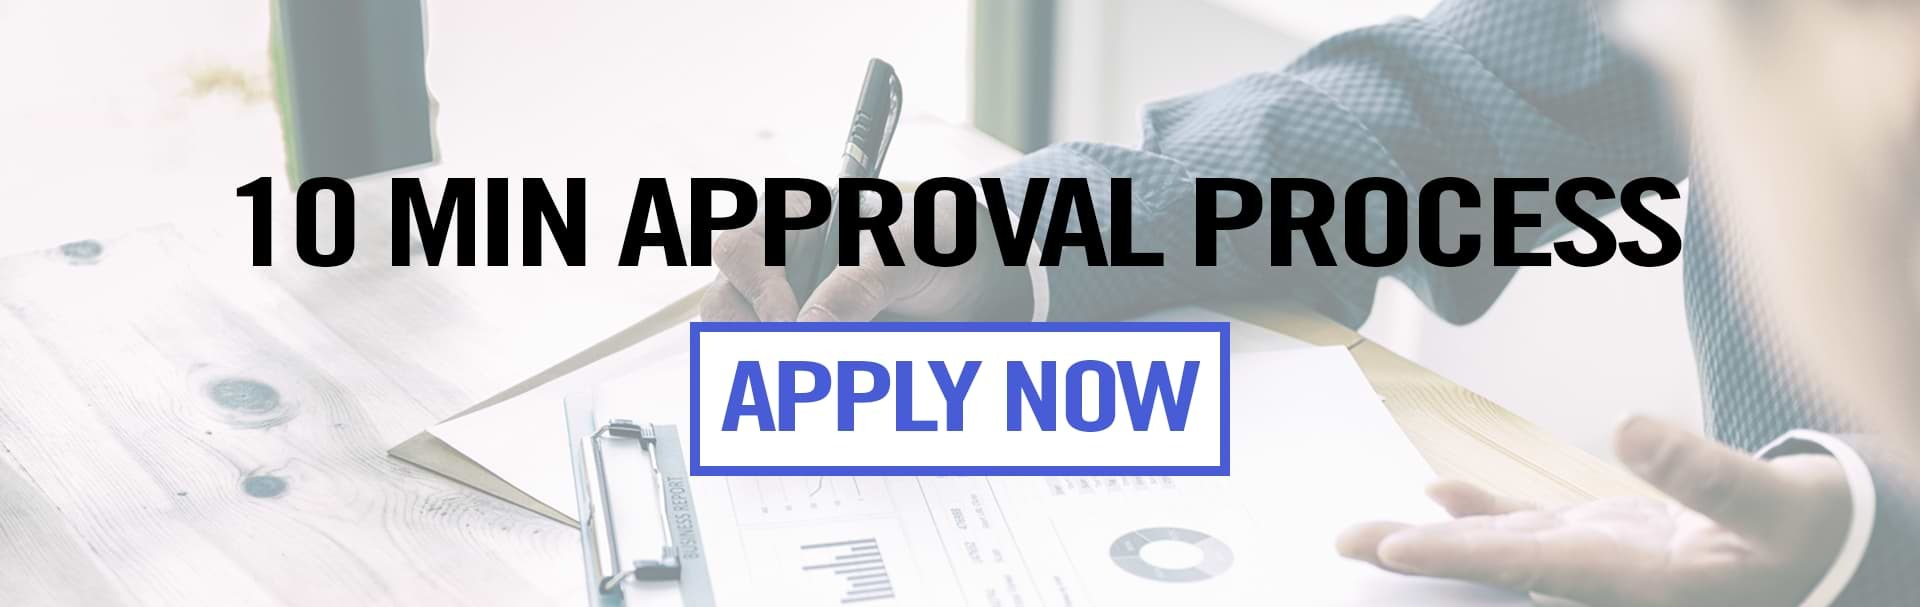 Ten Minute Approval Process at Auto Bank of Kansas City